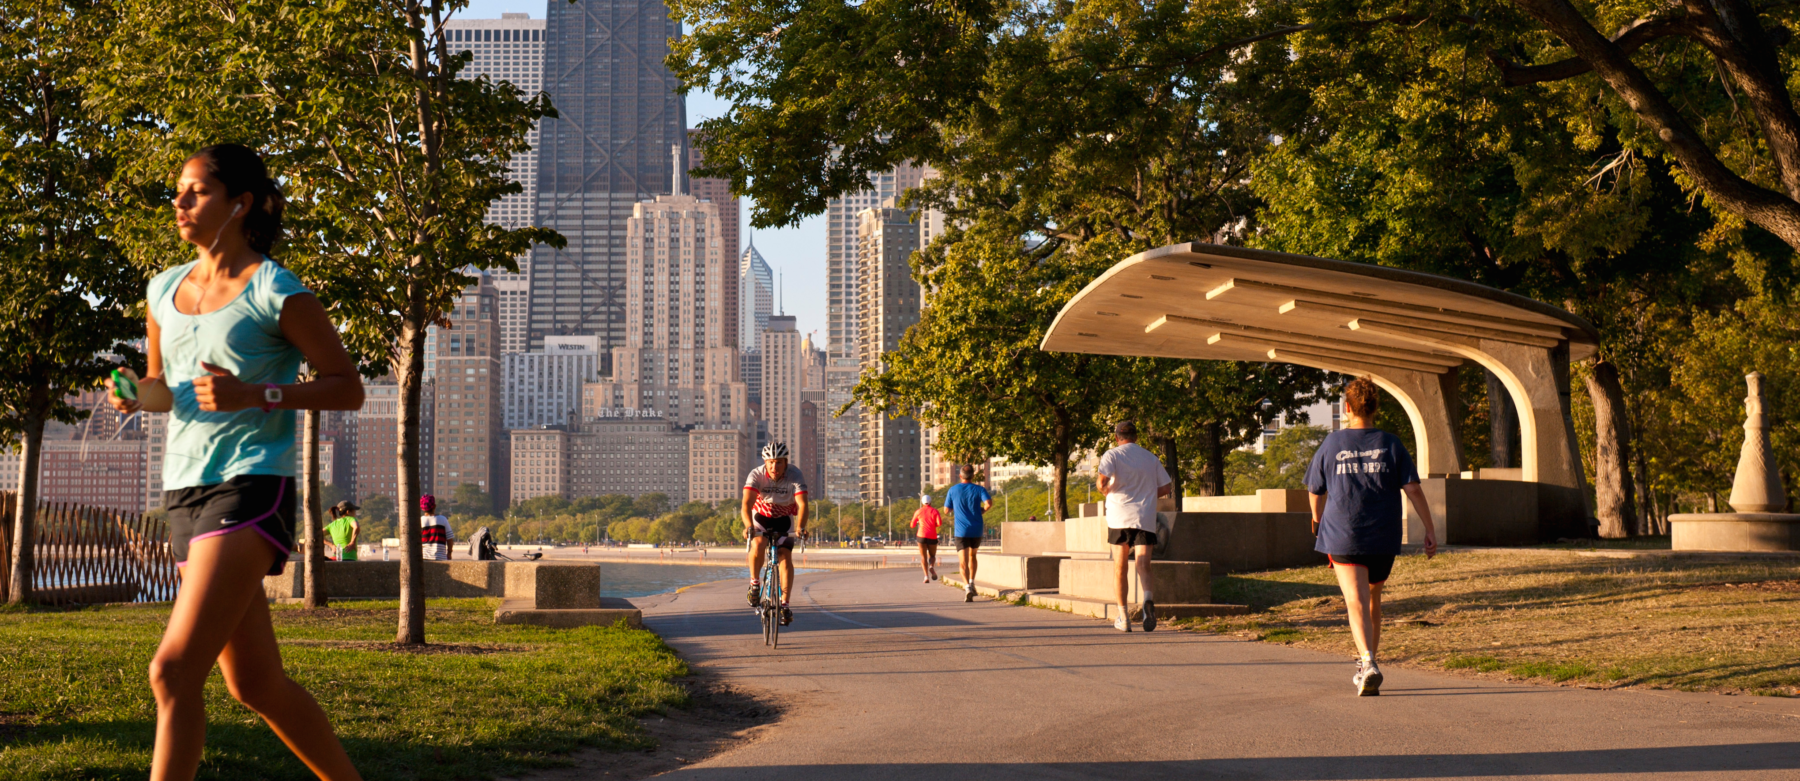 Discover outdoor adventure in Chicago